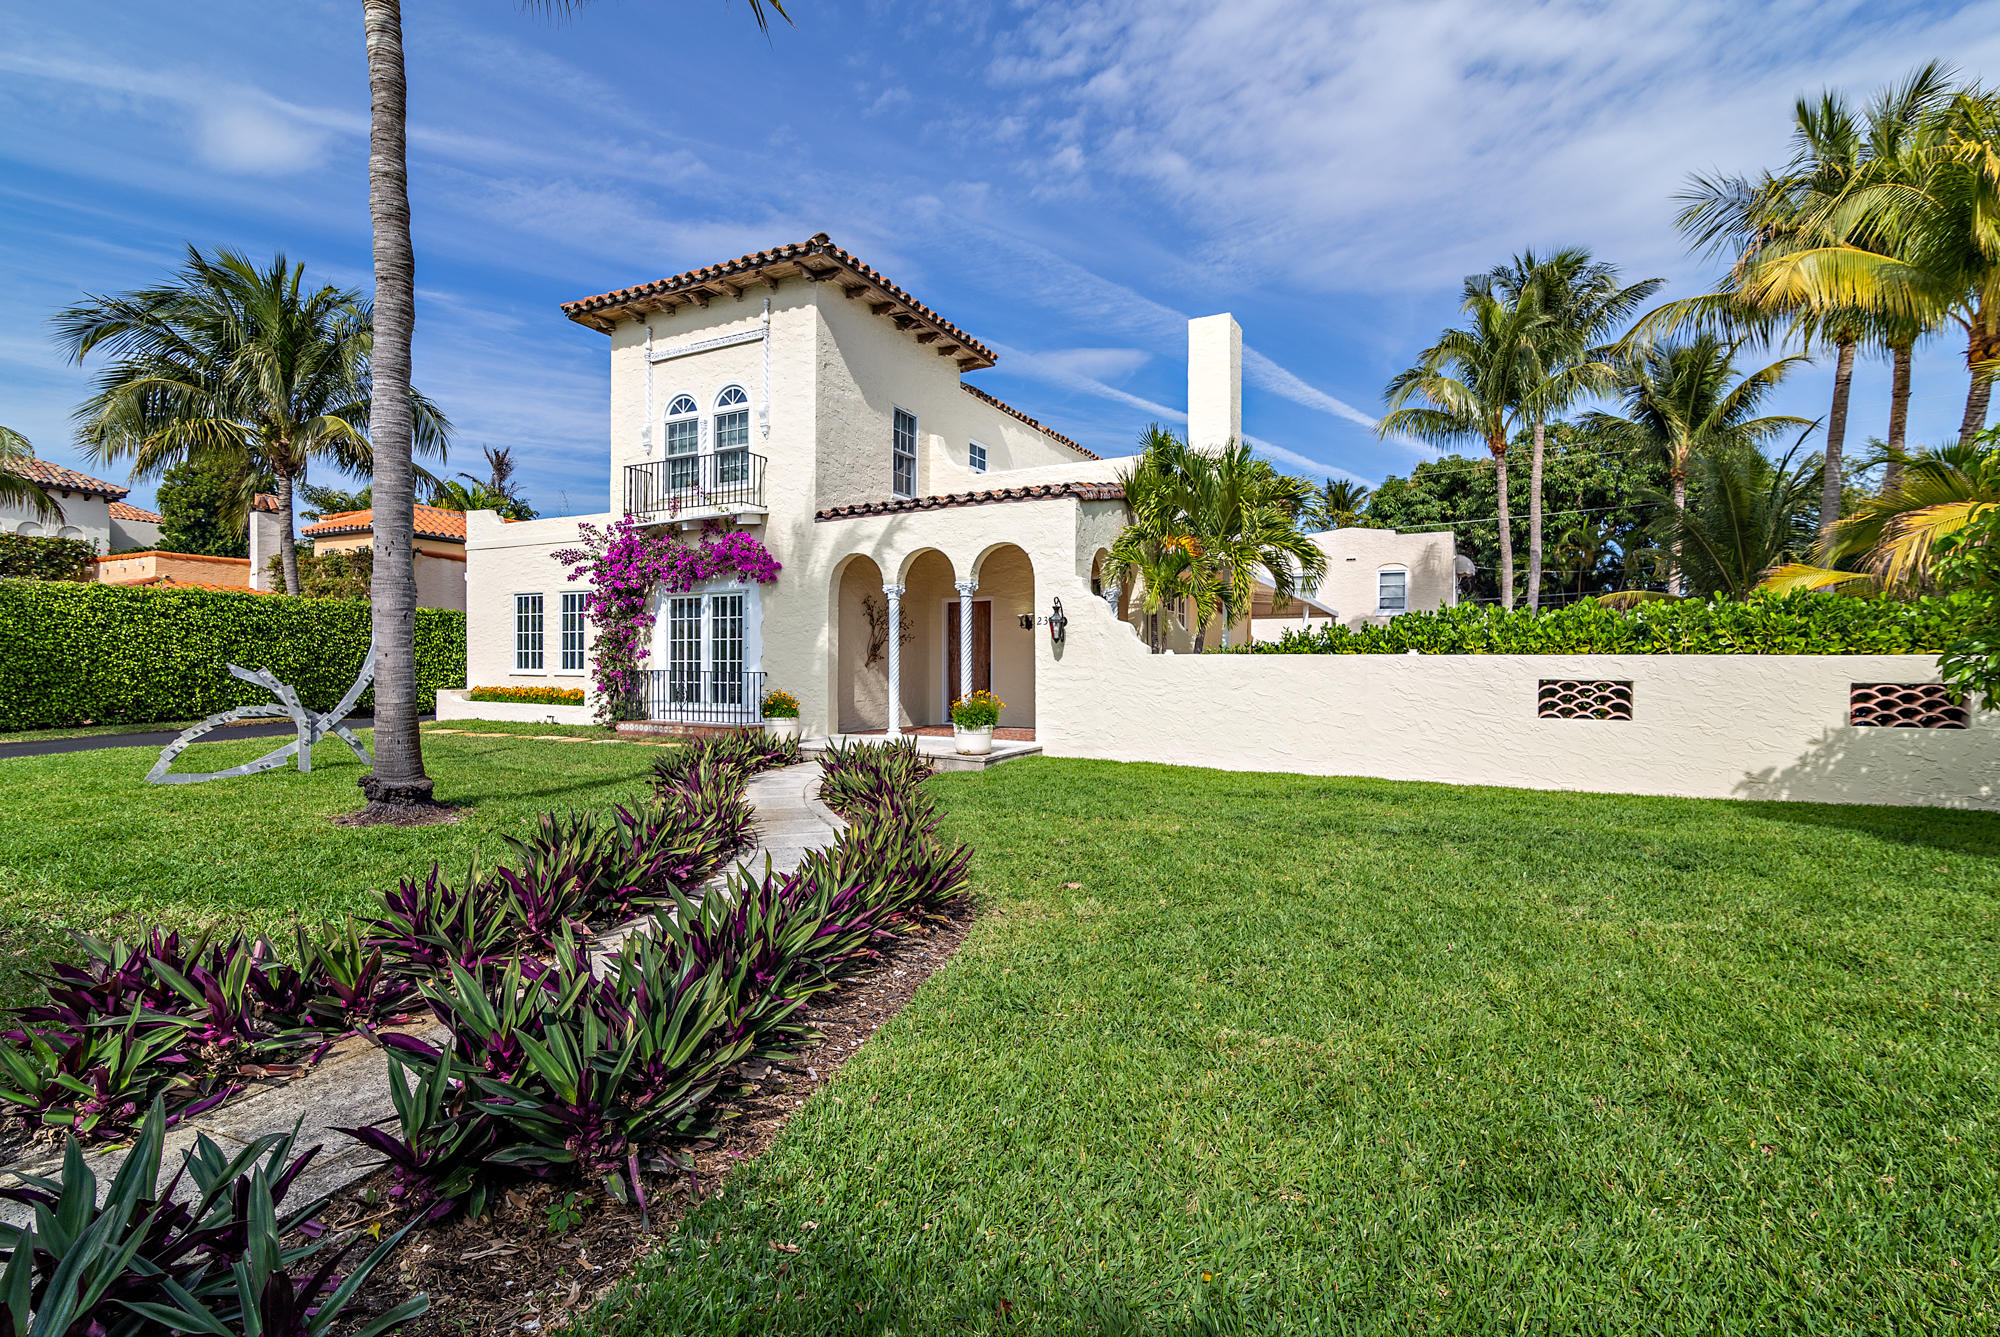 239 Murray Road, West Palm Beach, Florida 33405, 3 Bedrooms Bedrooms, ,3.2 BathroomsBathrooms,Single Family,For Sale,Lakewood,Murray,RX-10499500